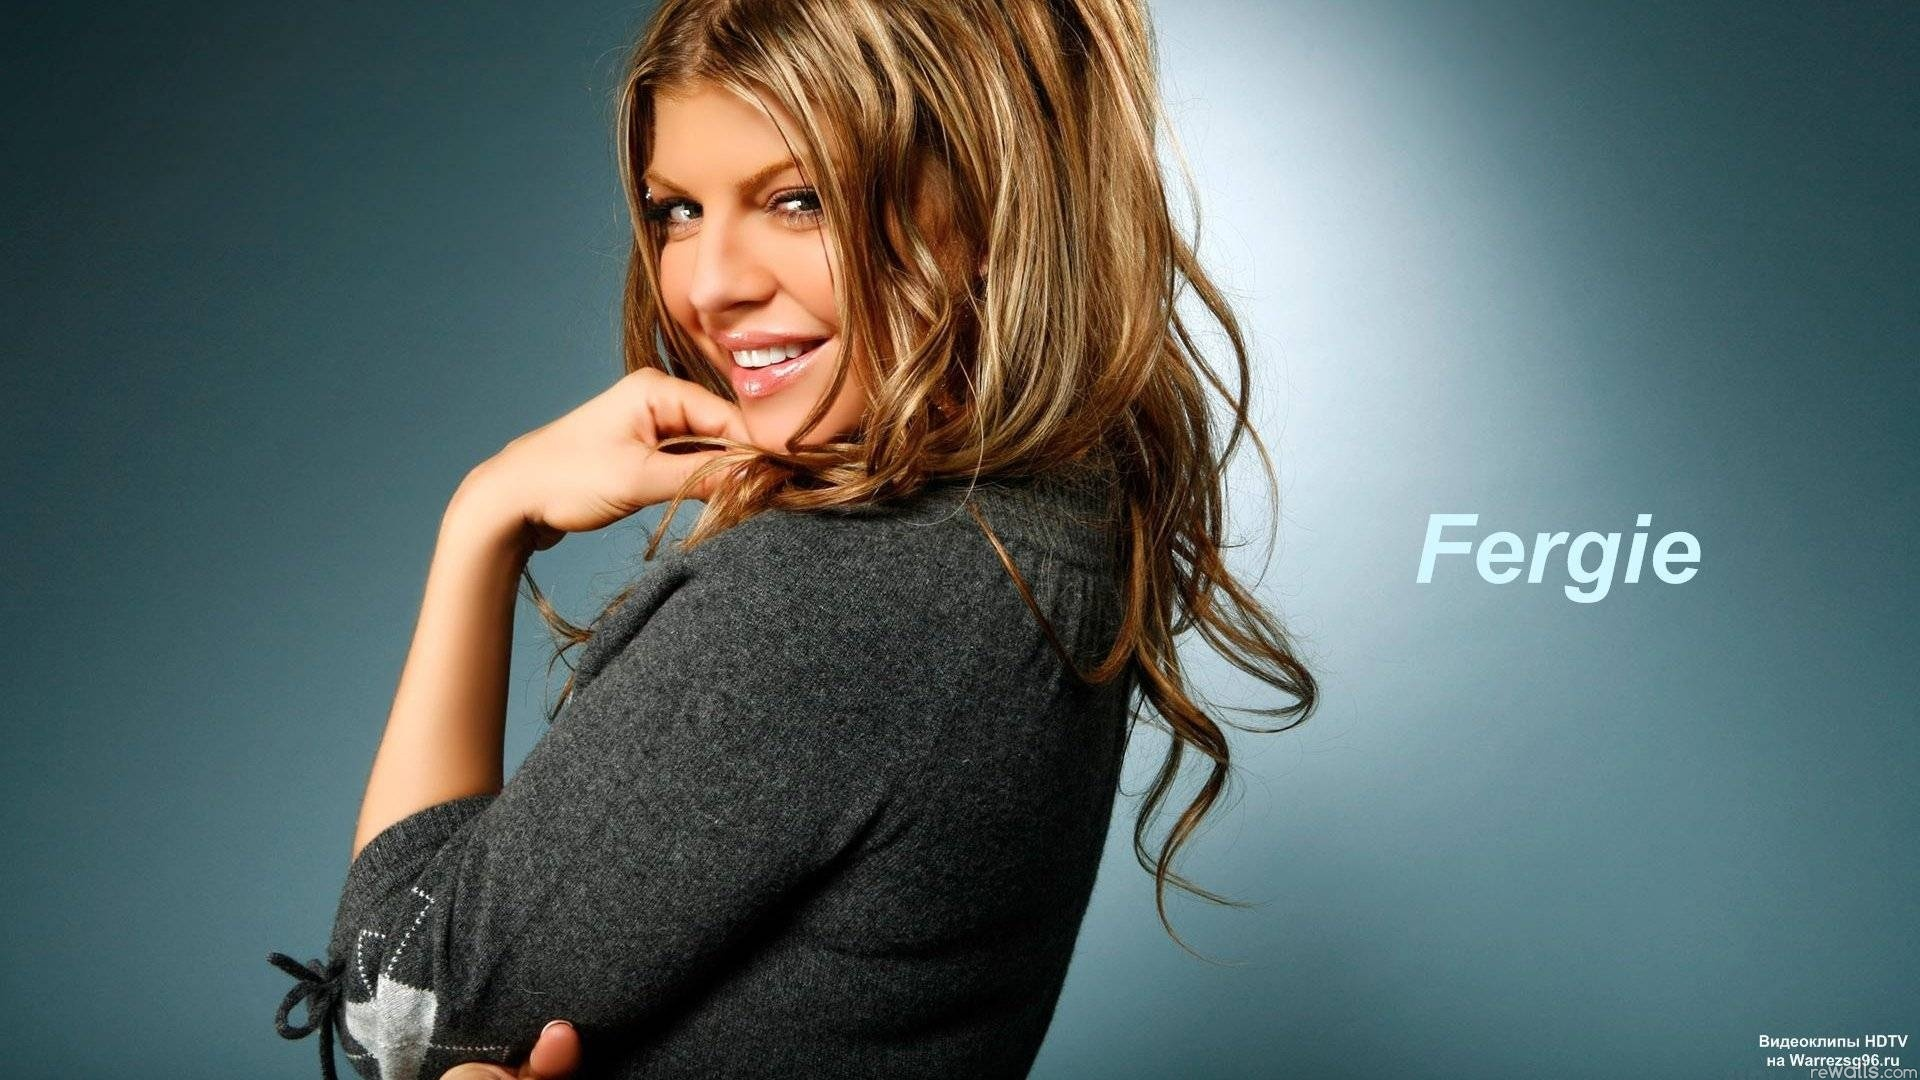 Description: Fergie Wallpaper is a hi res Wallpaper for pc desktops ... Fergie